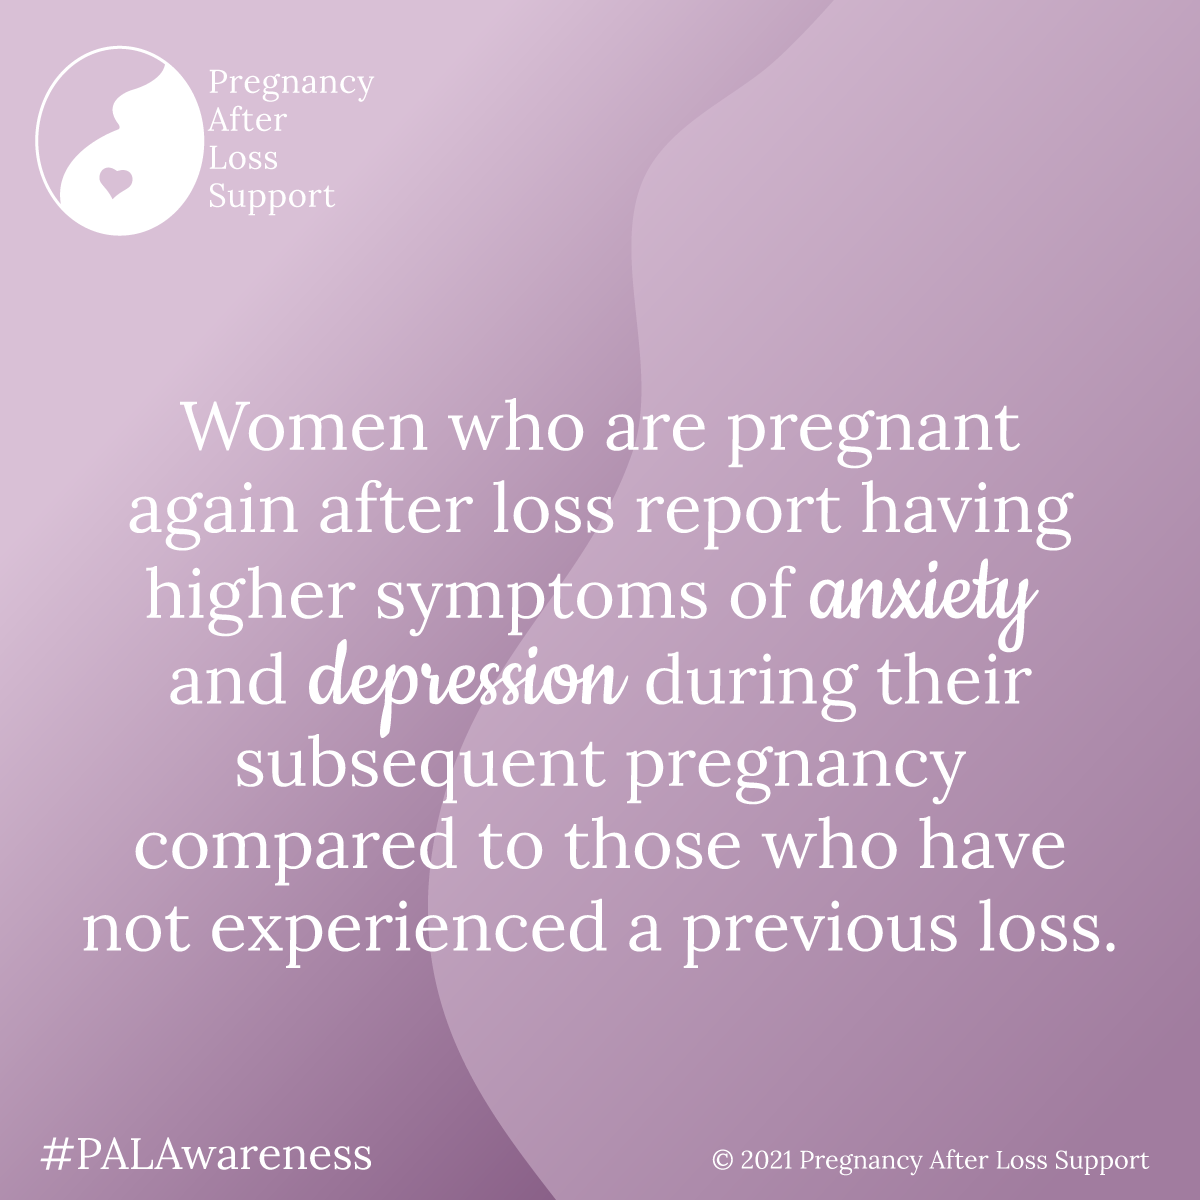 Women who are pregnant again after loss report having higher symptoms of anxiety and depression during their subsequent pregnancy